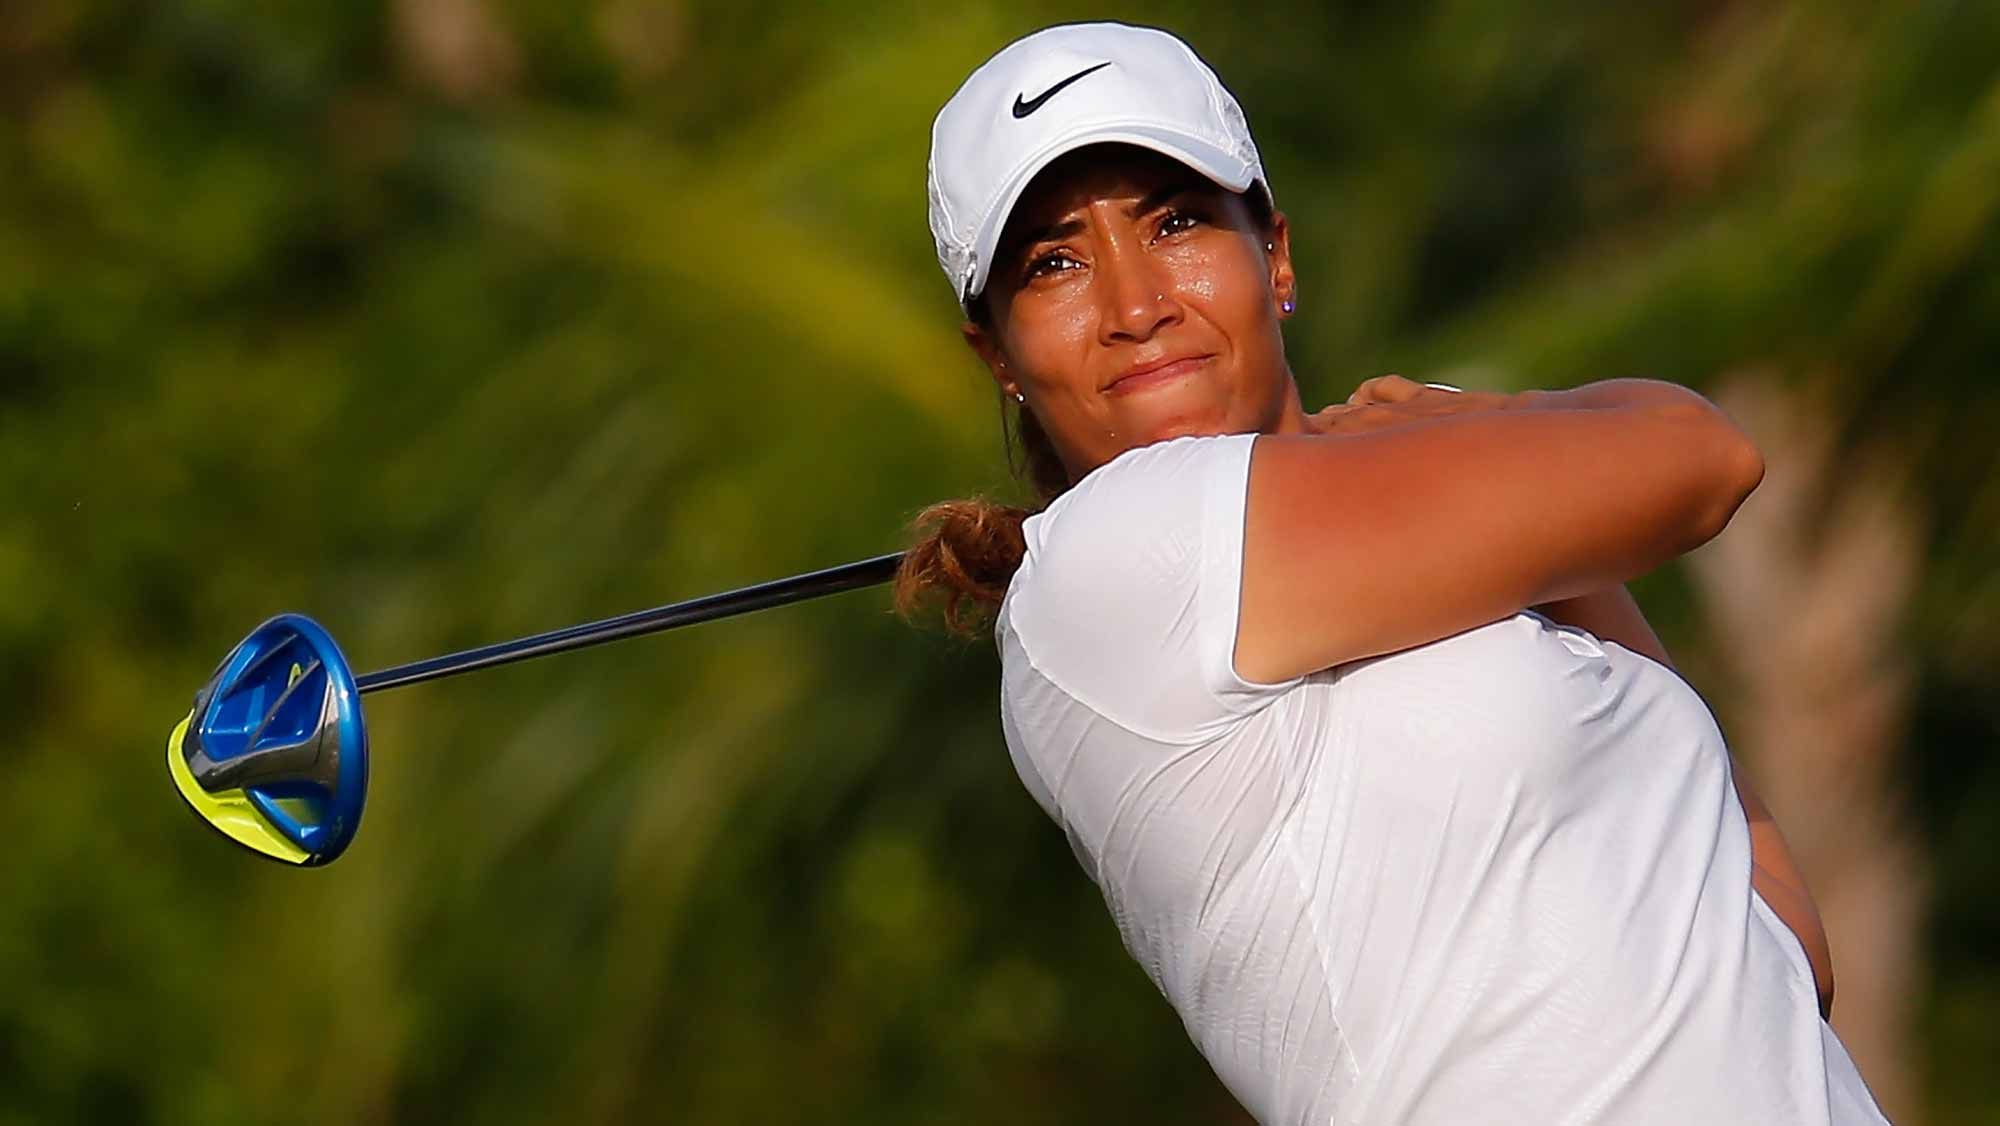 Cheyenne Woods tees off the fourth hole during the first round of the Pure Silk Bahamas LPGA Classic at the Ocean Club Golf Course